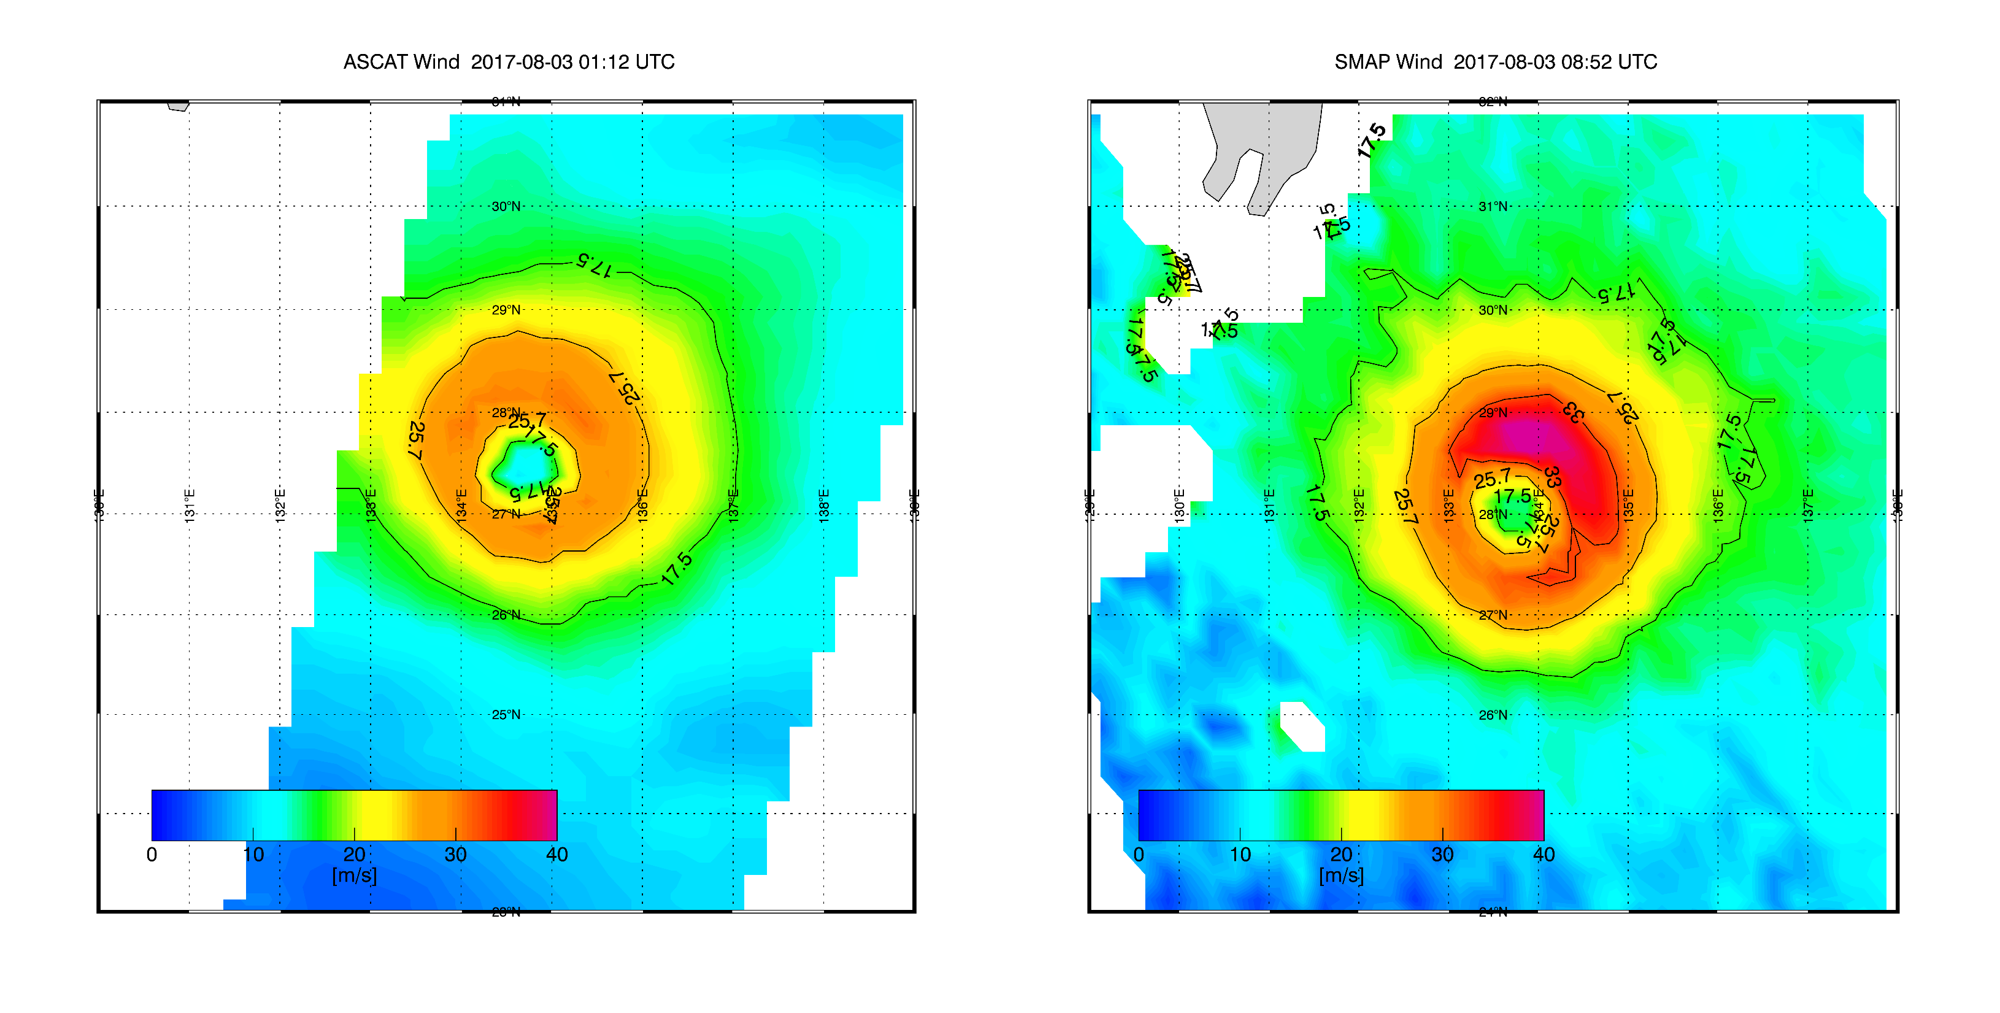 Noru wind field from ASCAT and SMAP